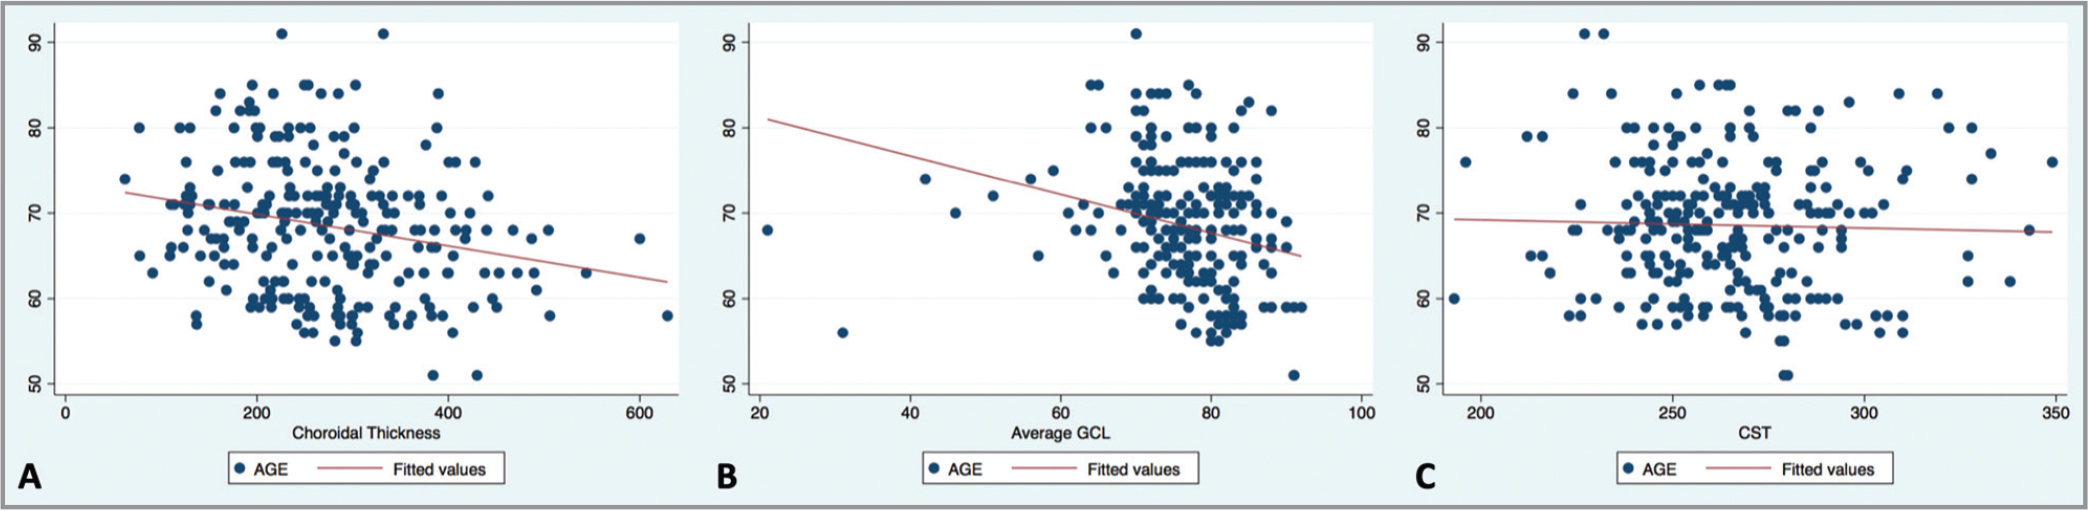 Scatterplots showing associations between age and choroidal thickness (A), average ganglion cell layer-inner plexiform layer (GC-IPL) thickness (B), and central subfield thickness (CST) (C).